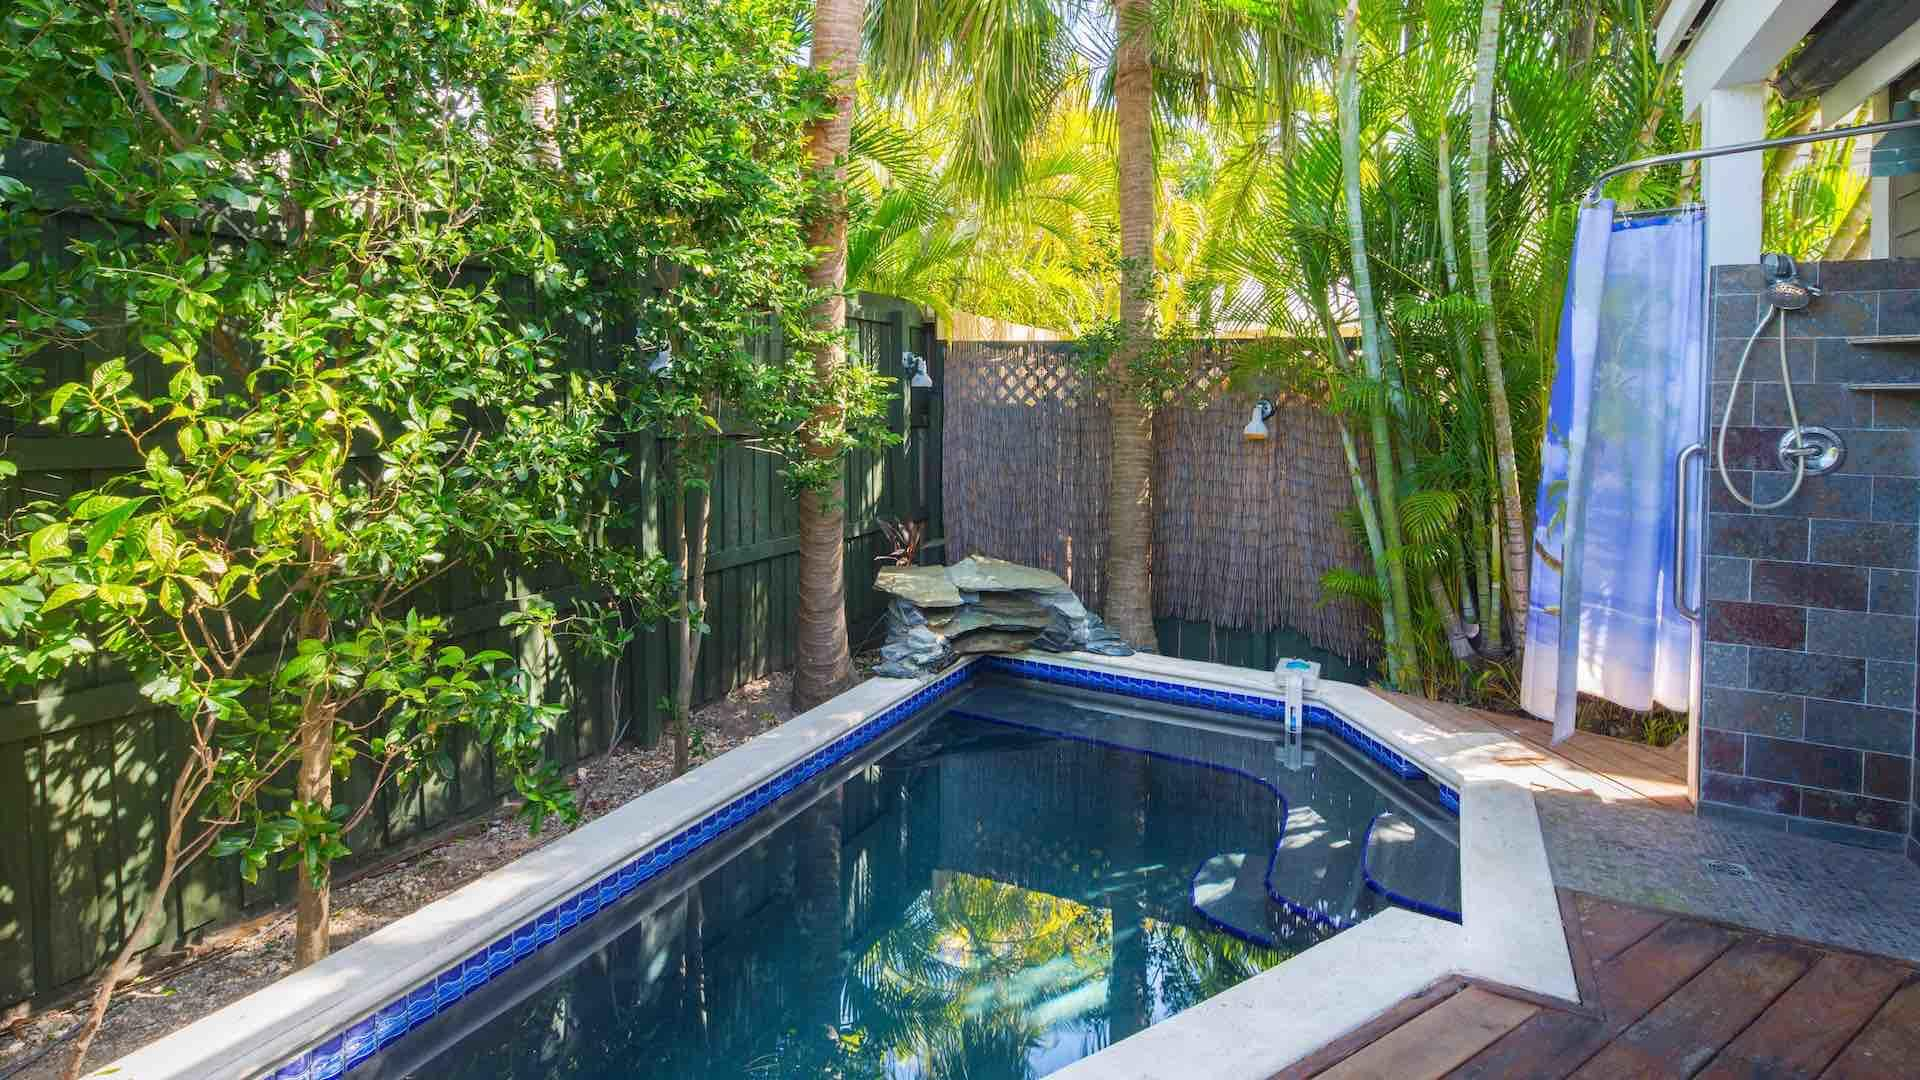 The pool has a soothing waterfall and outdoor shower...